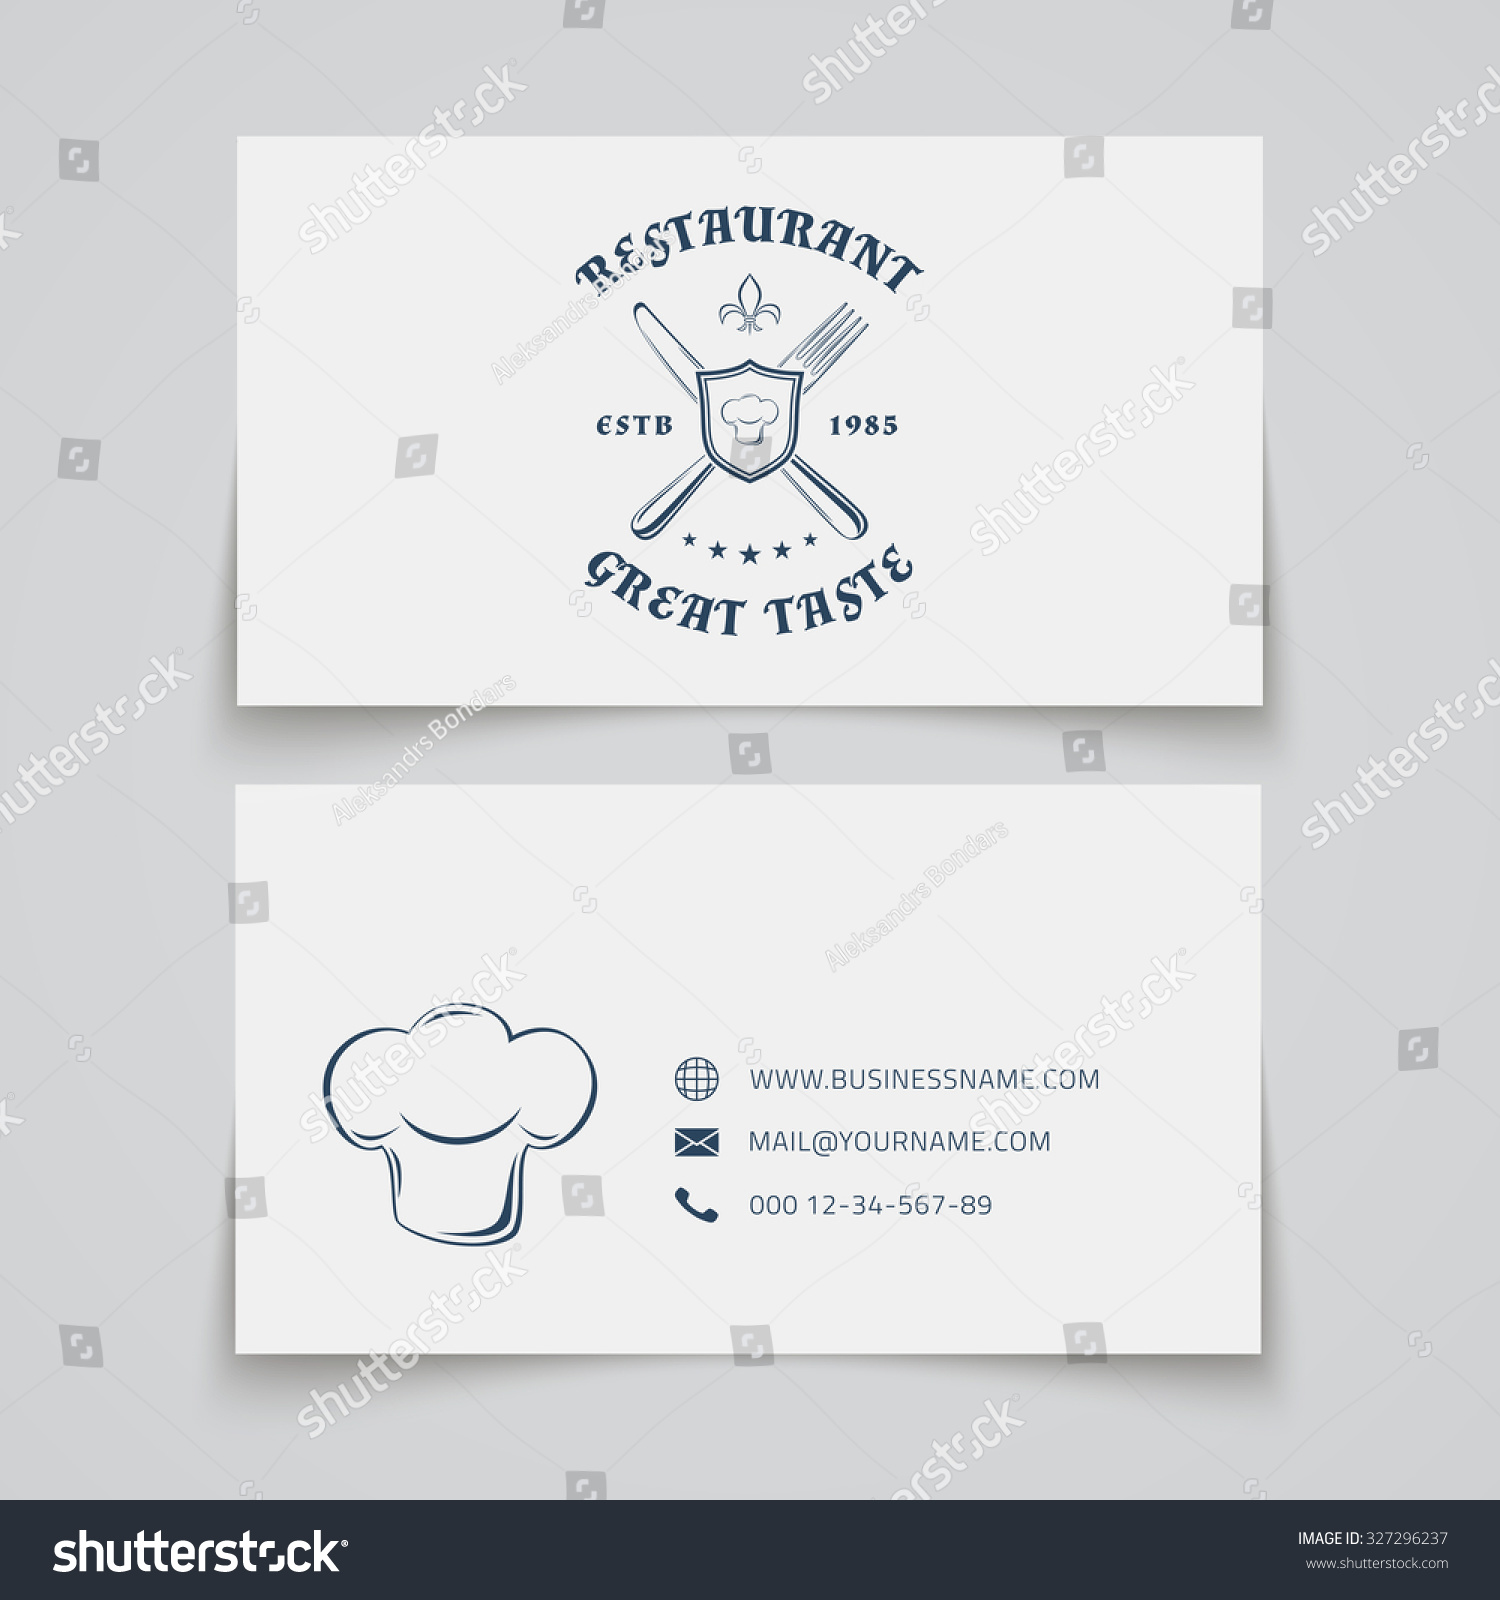 Business cards cafe and restaurant vector set 3 gallery card business cards cafe and restaurant vector set 3 gallery card business cards cafe and restaurant vector reheart Image collections